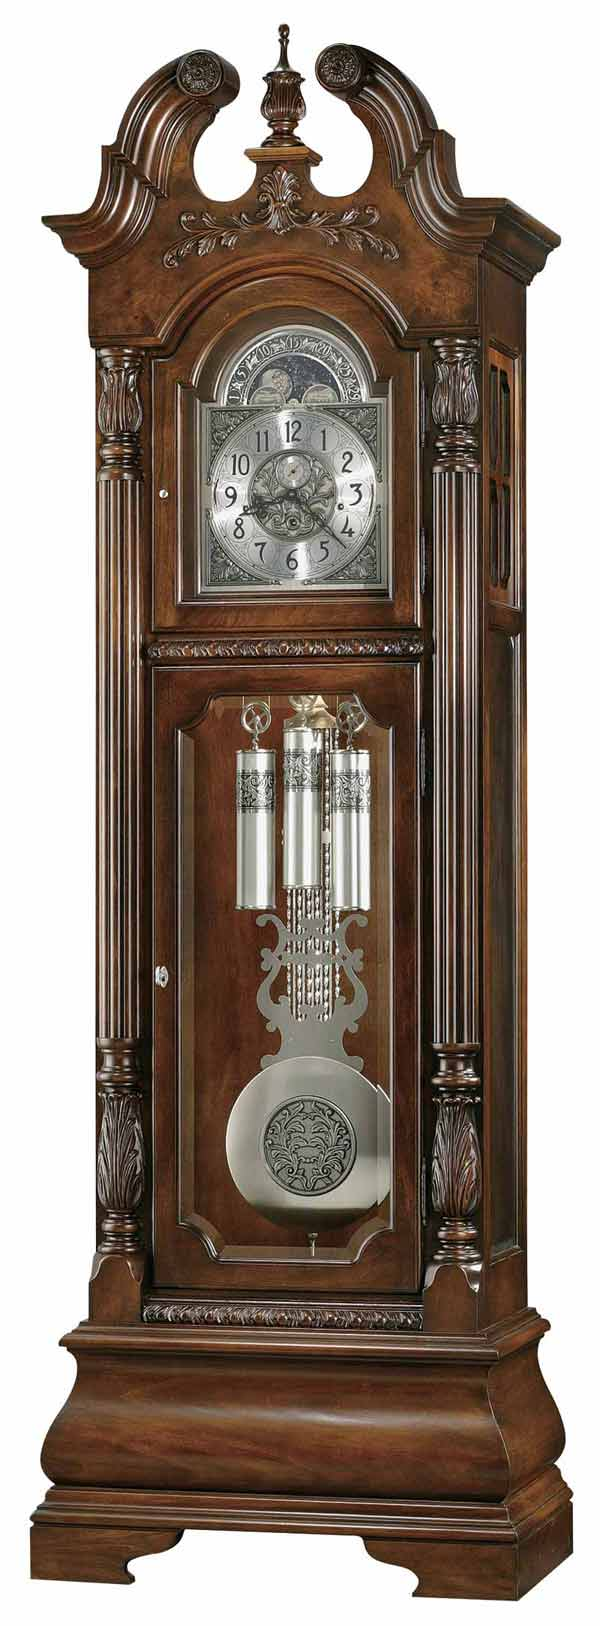 Ordinaire Detailed Image Of The Howard Miller Stratford 611 132 Grandfather Clock ...